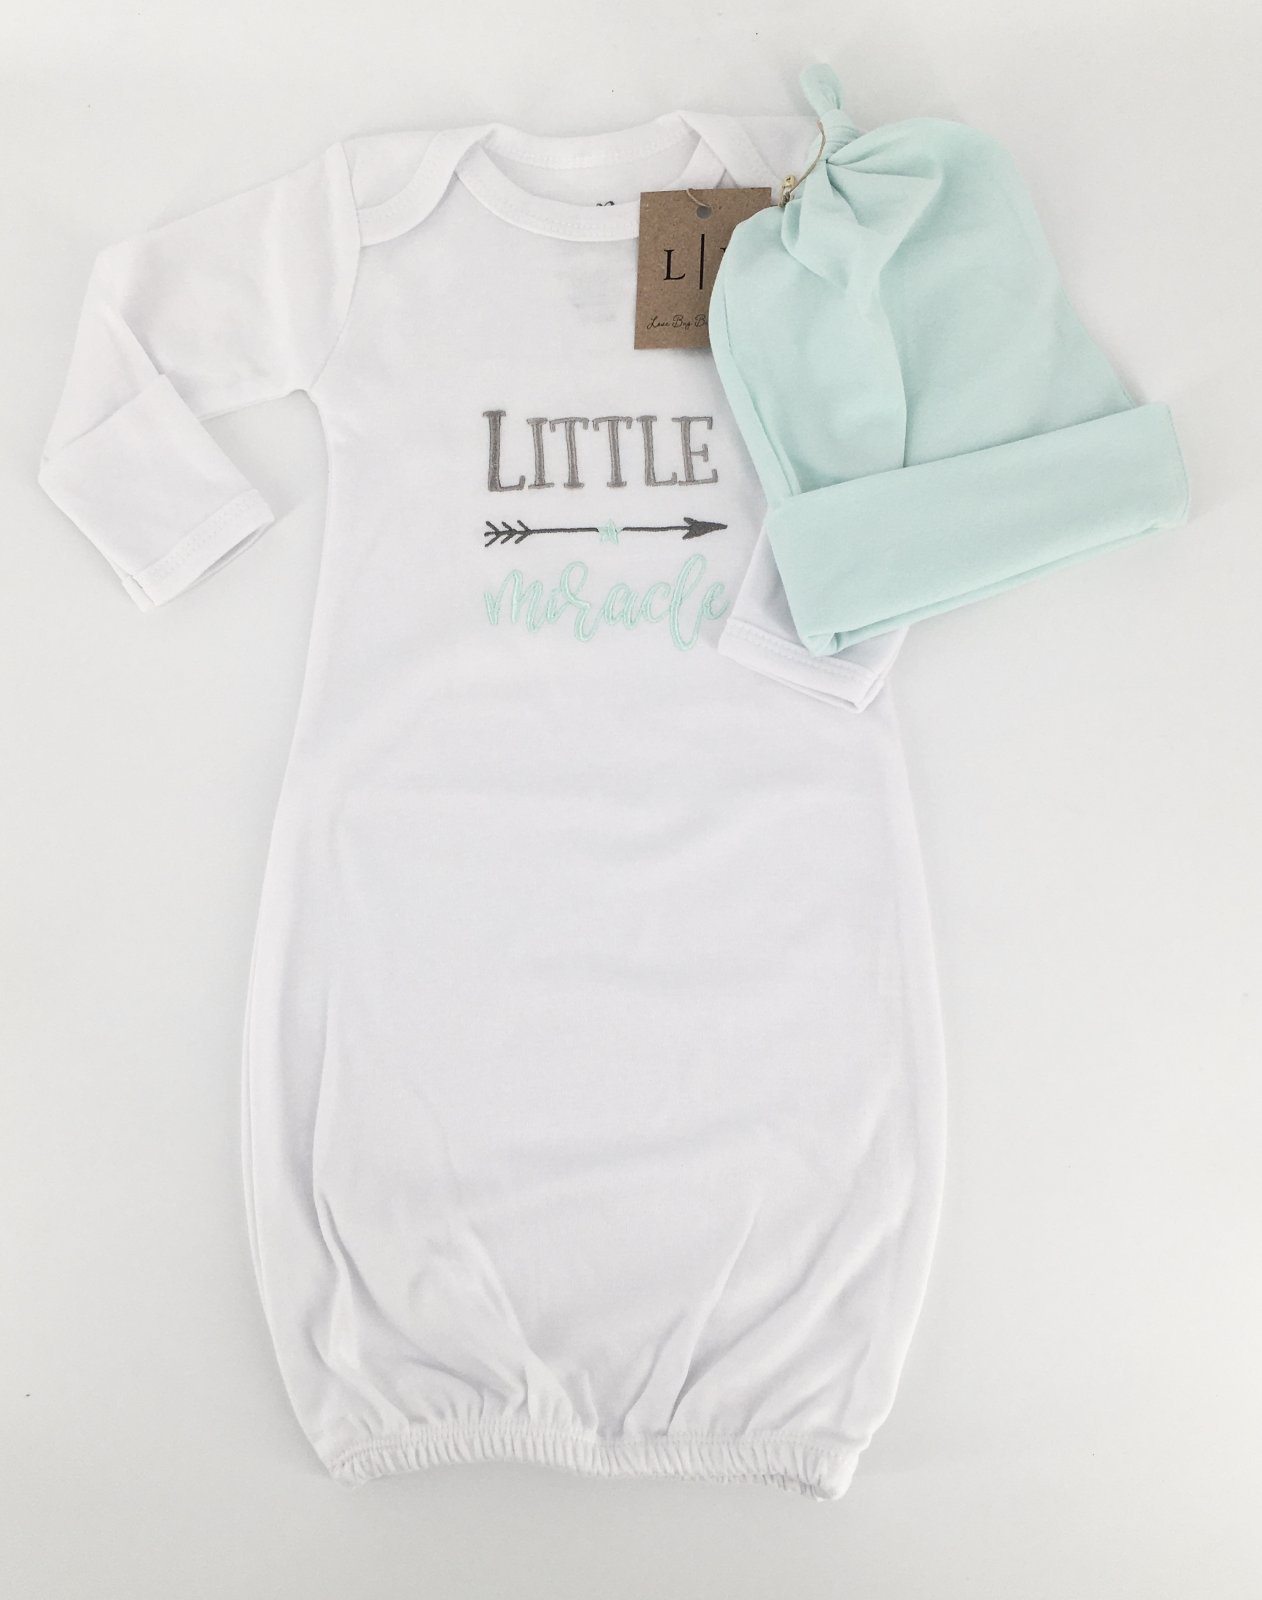 Little Miracle Gown with Matching Hat